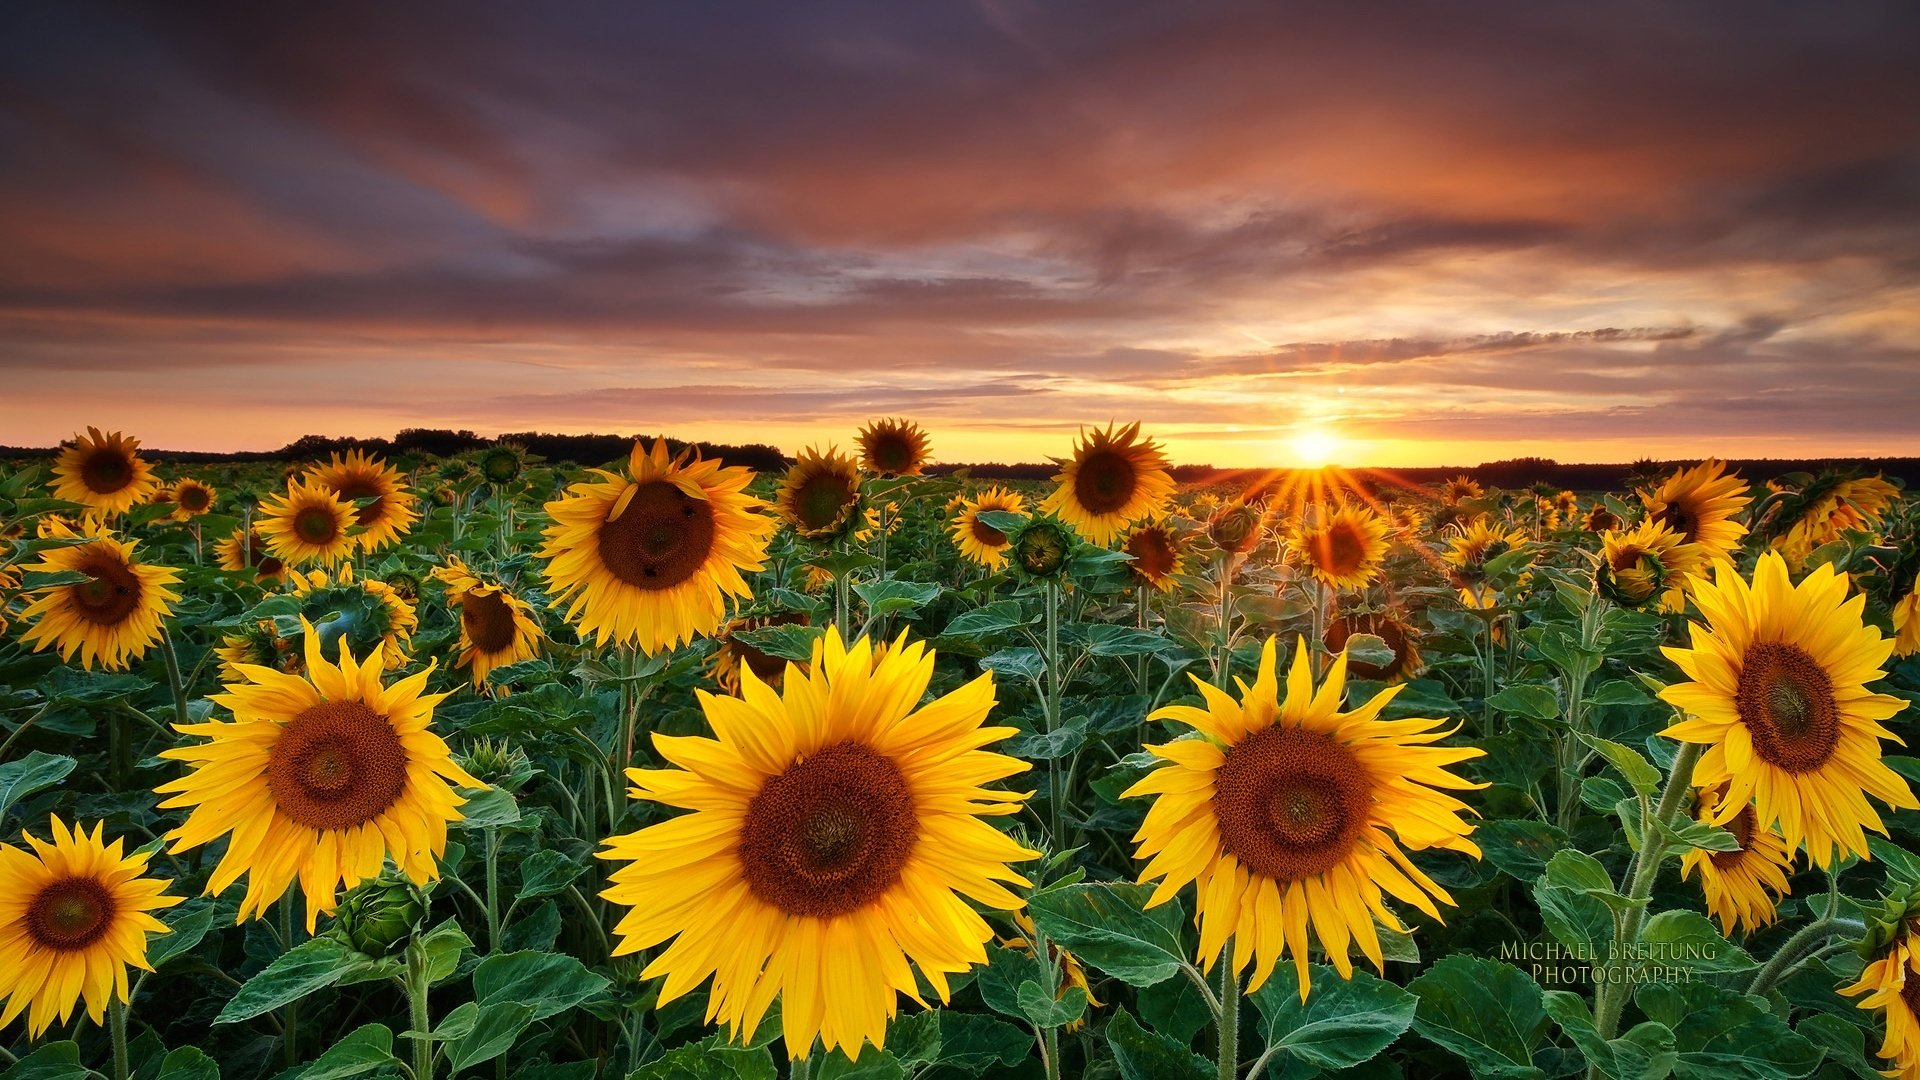 481 Sunflower Hd Wallpapers Background Images Wallpaper Abyss